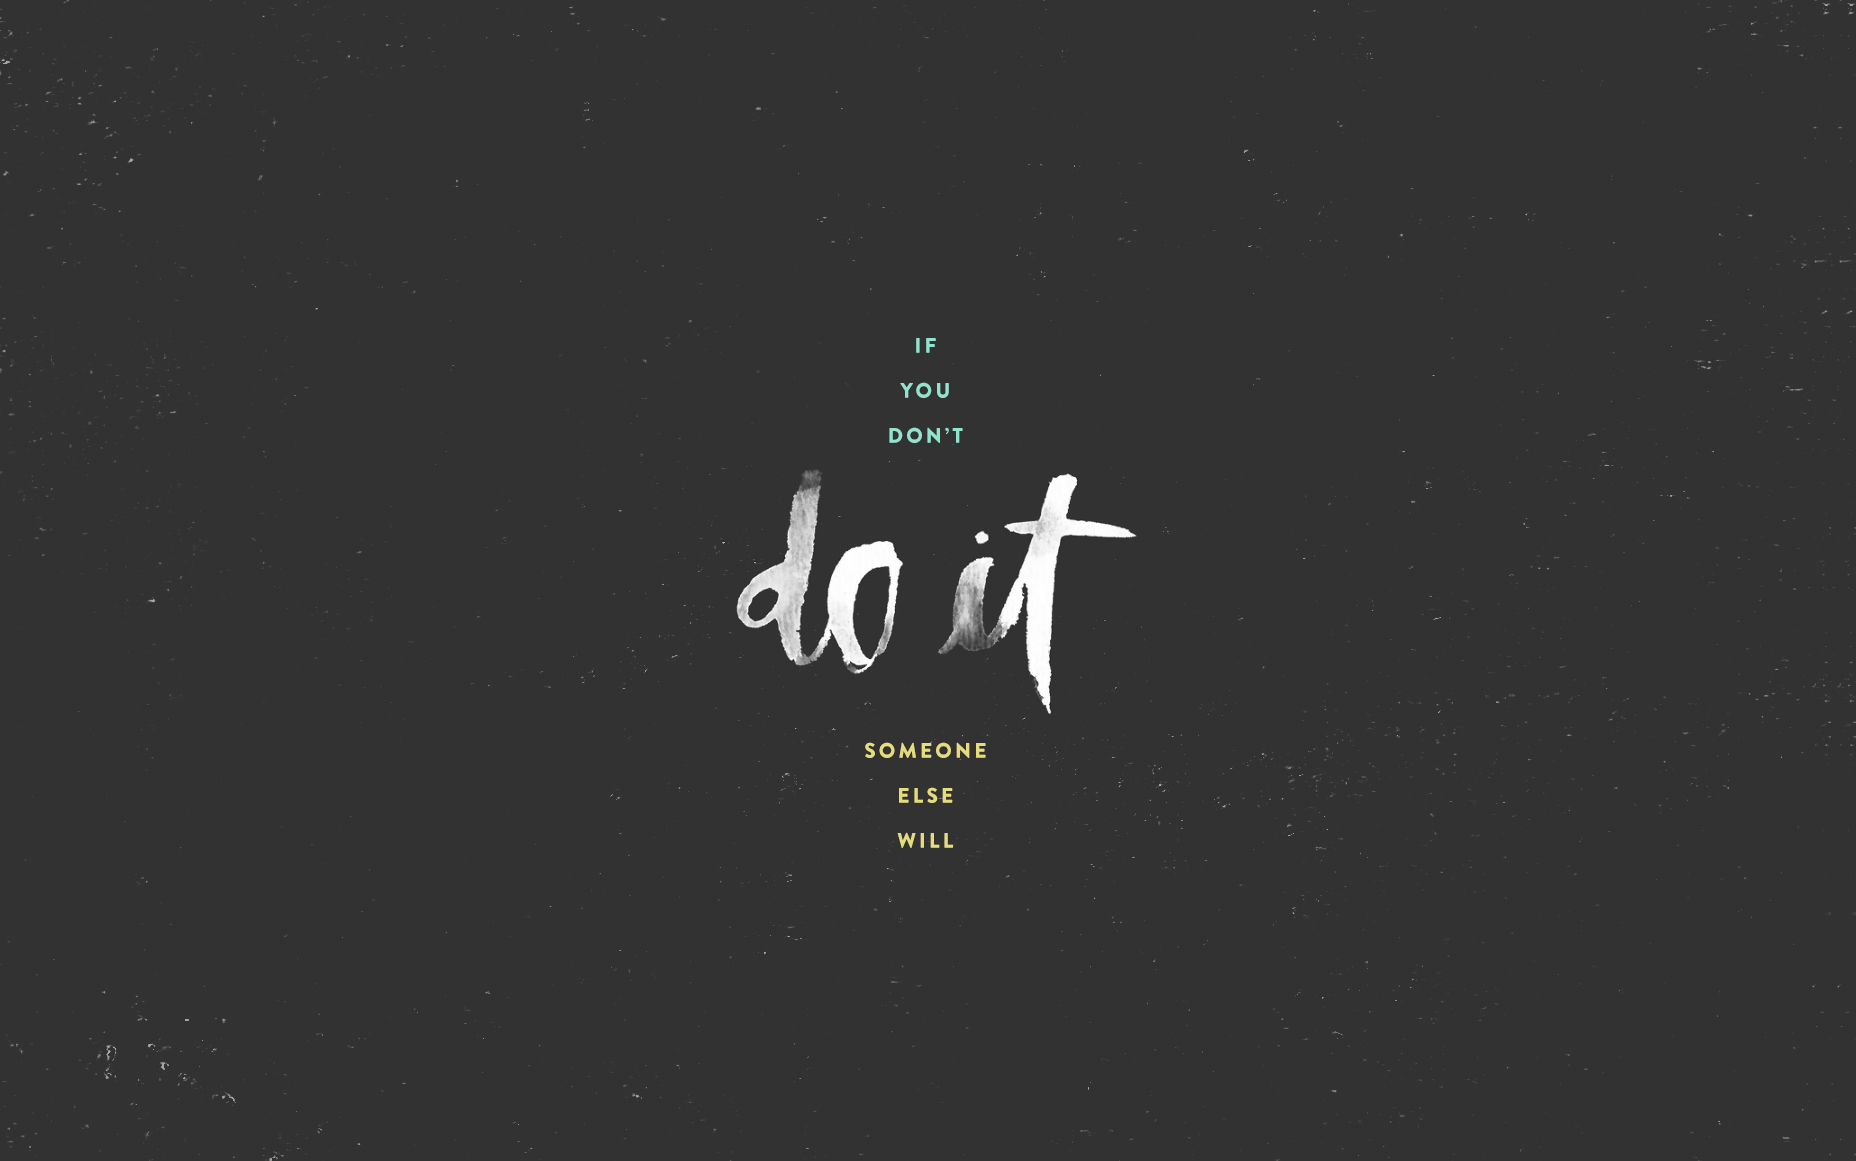 [Image]If you dont do it, someone else will! (Wallpaper